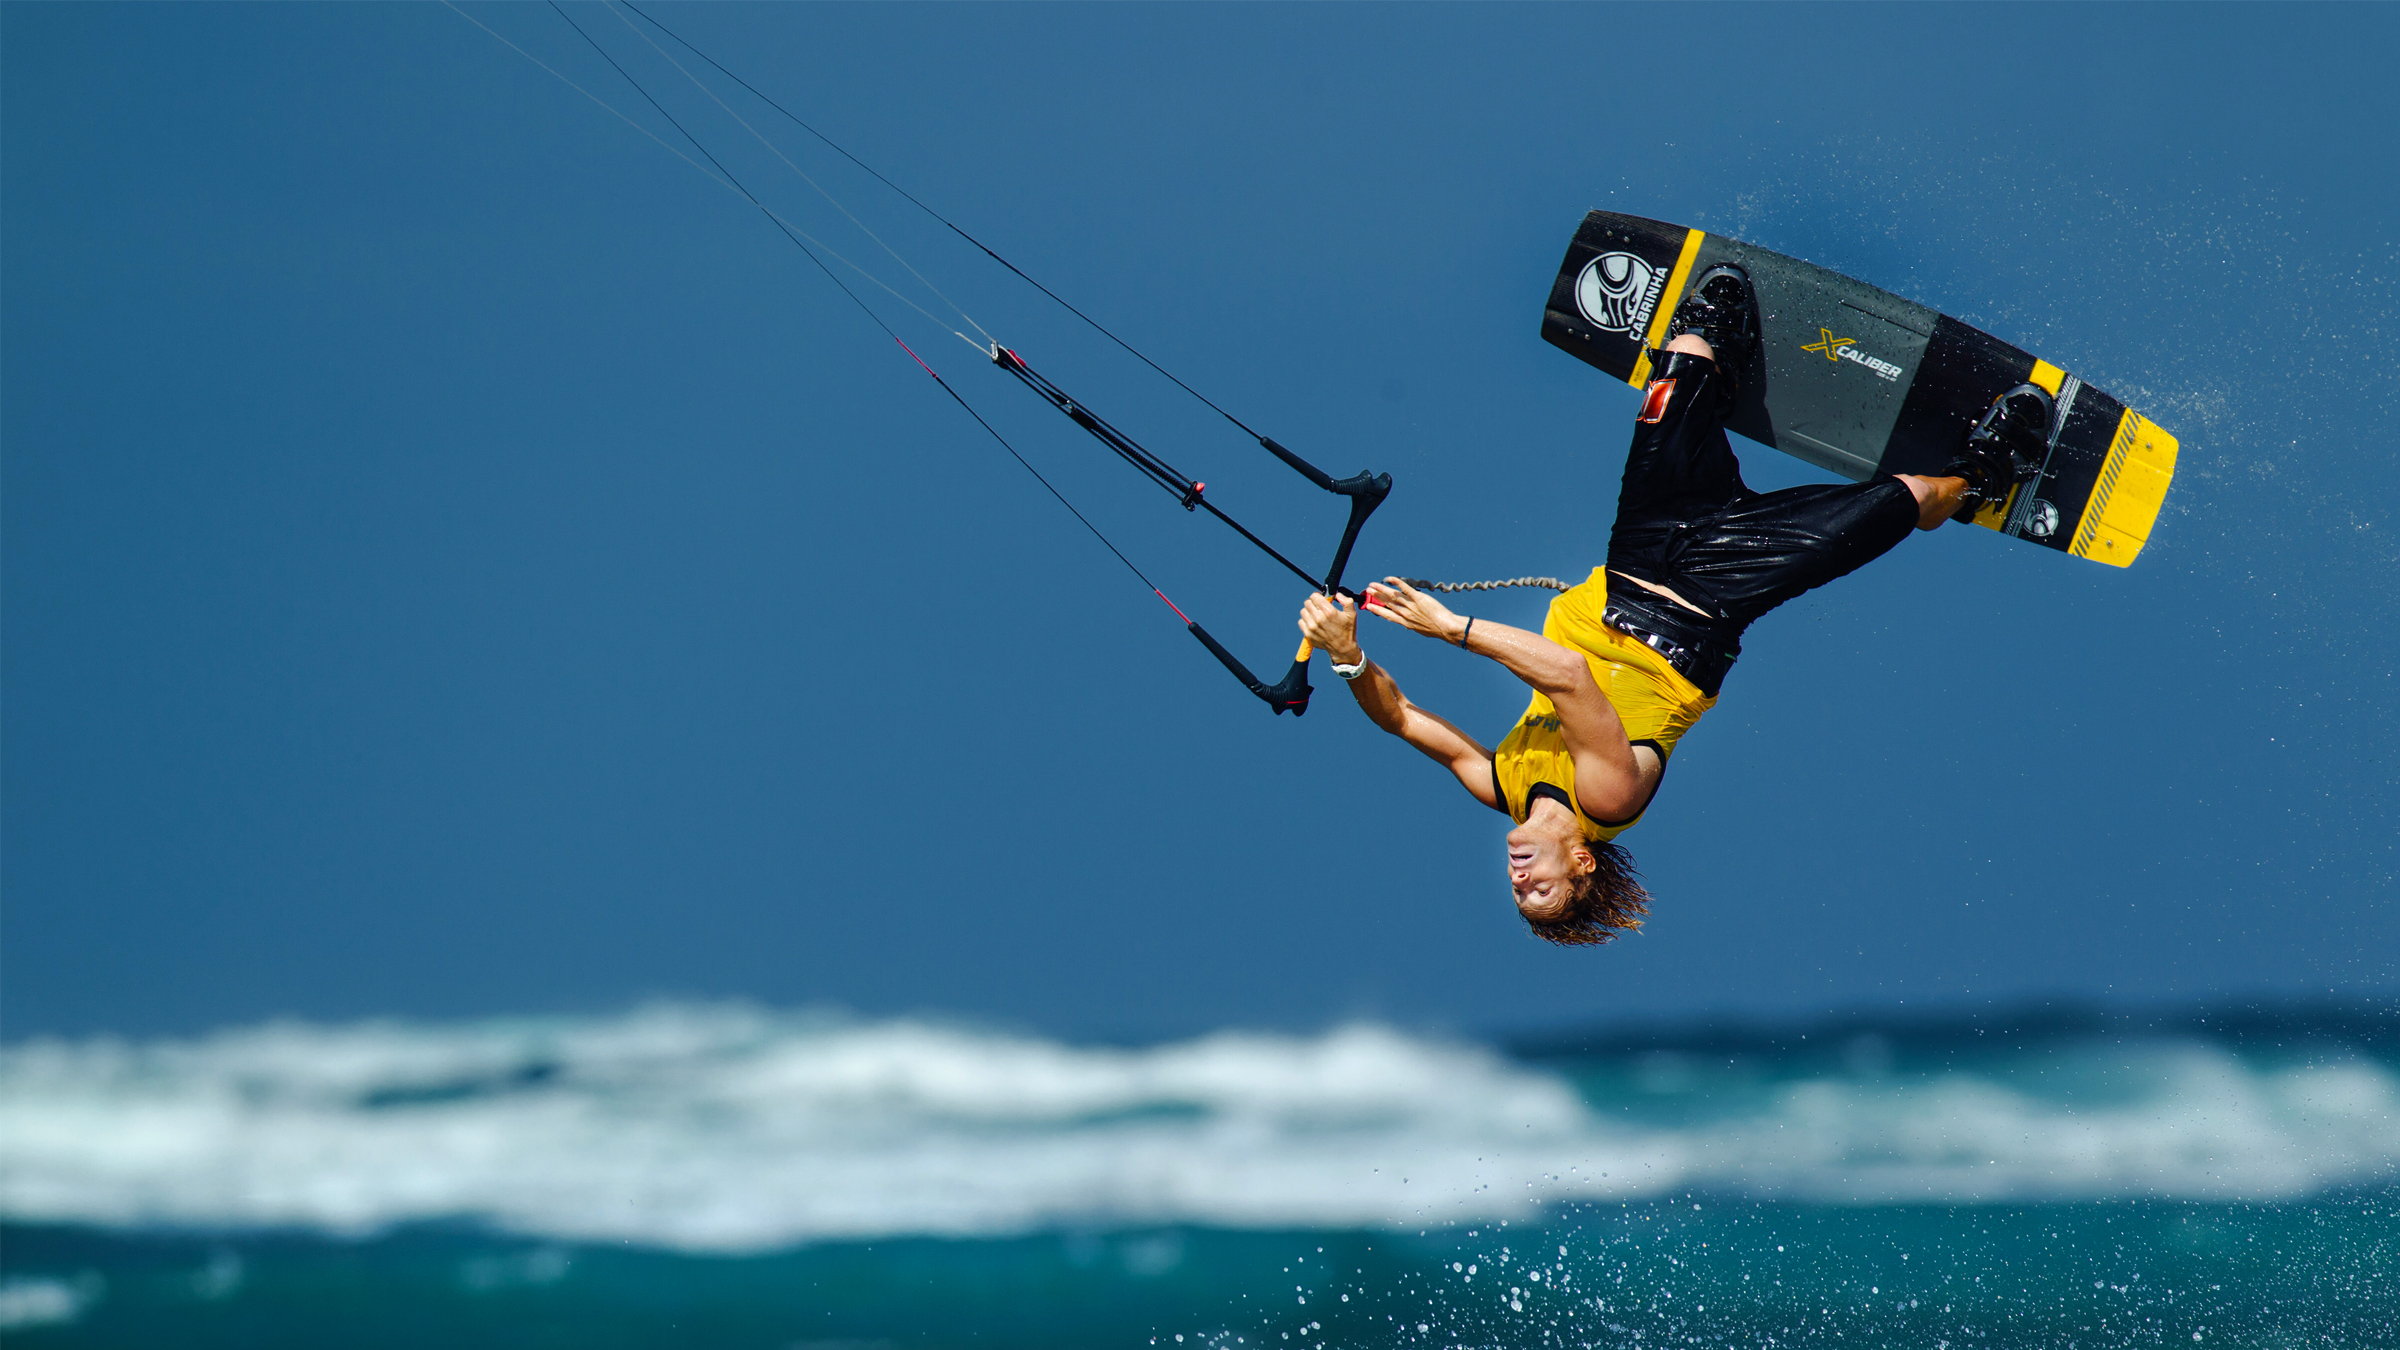 kitesurf wallpaper image - Alberto Rondina inverted on the Cabrinha Xcaliber full carbon board - kitesurfing - in resolution: High Definition - HD 16:9 2400 X 1350